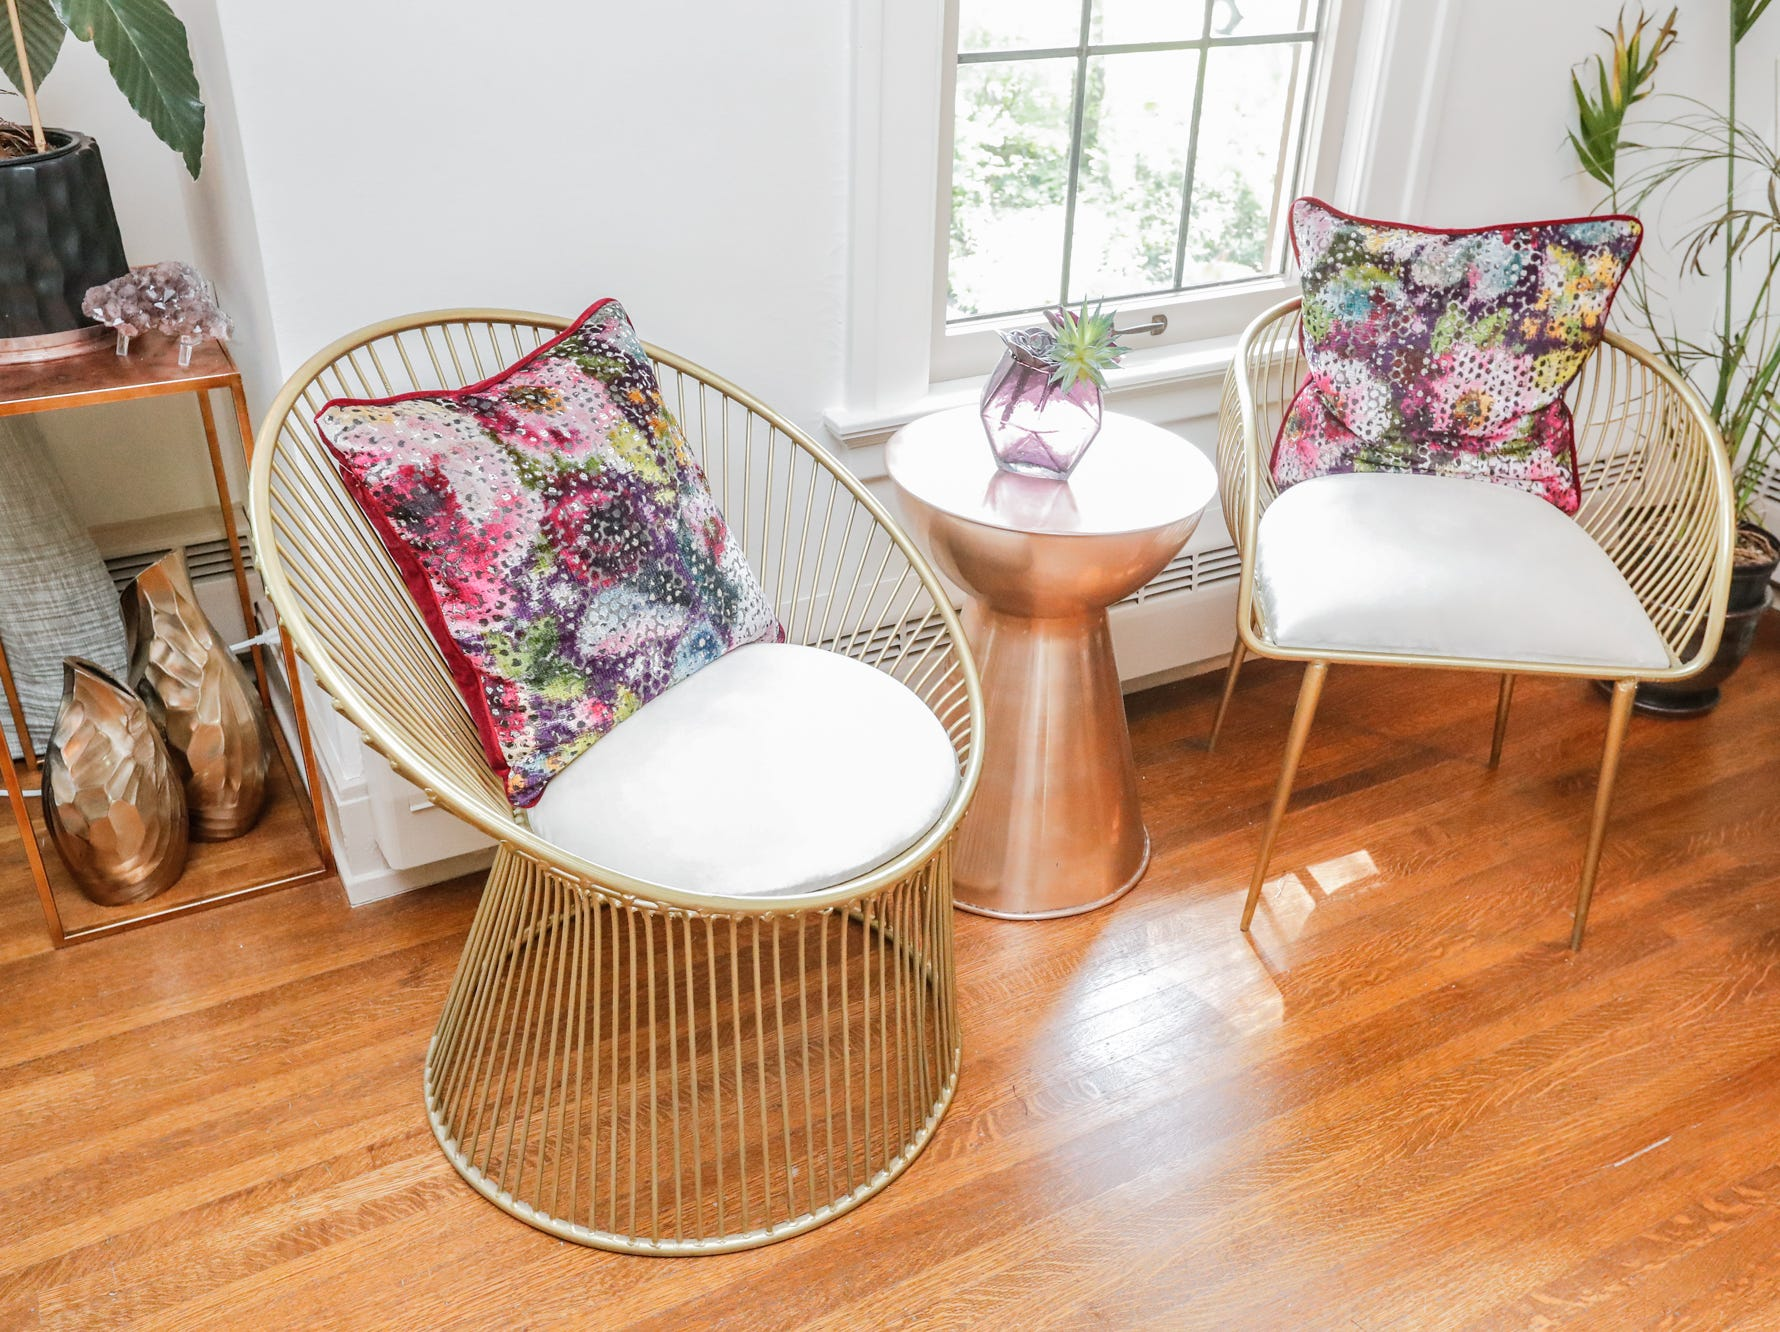 """The """"Toren Reinventing Amsterdam"""", designed by Monica Due and Julie Boutilier, of Cornerstone Interiors, inside the 58th annual St. Margaret's Hospital Guild Decorators' Show House and Gardens, located at 4160 Washington Blvd., Indianapolis, on Wednesday, May 8, 2019."""